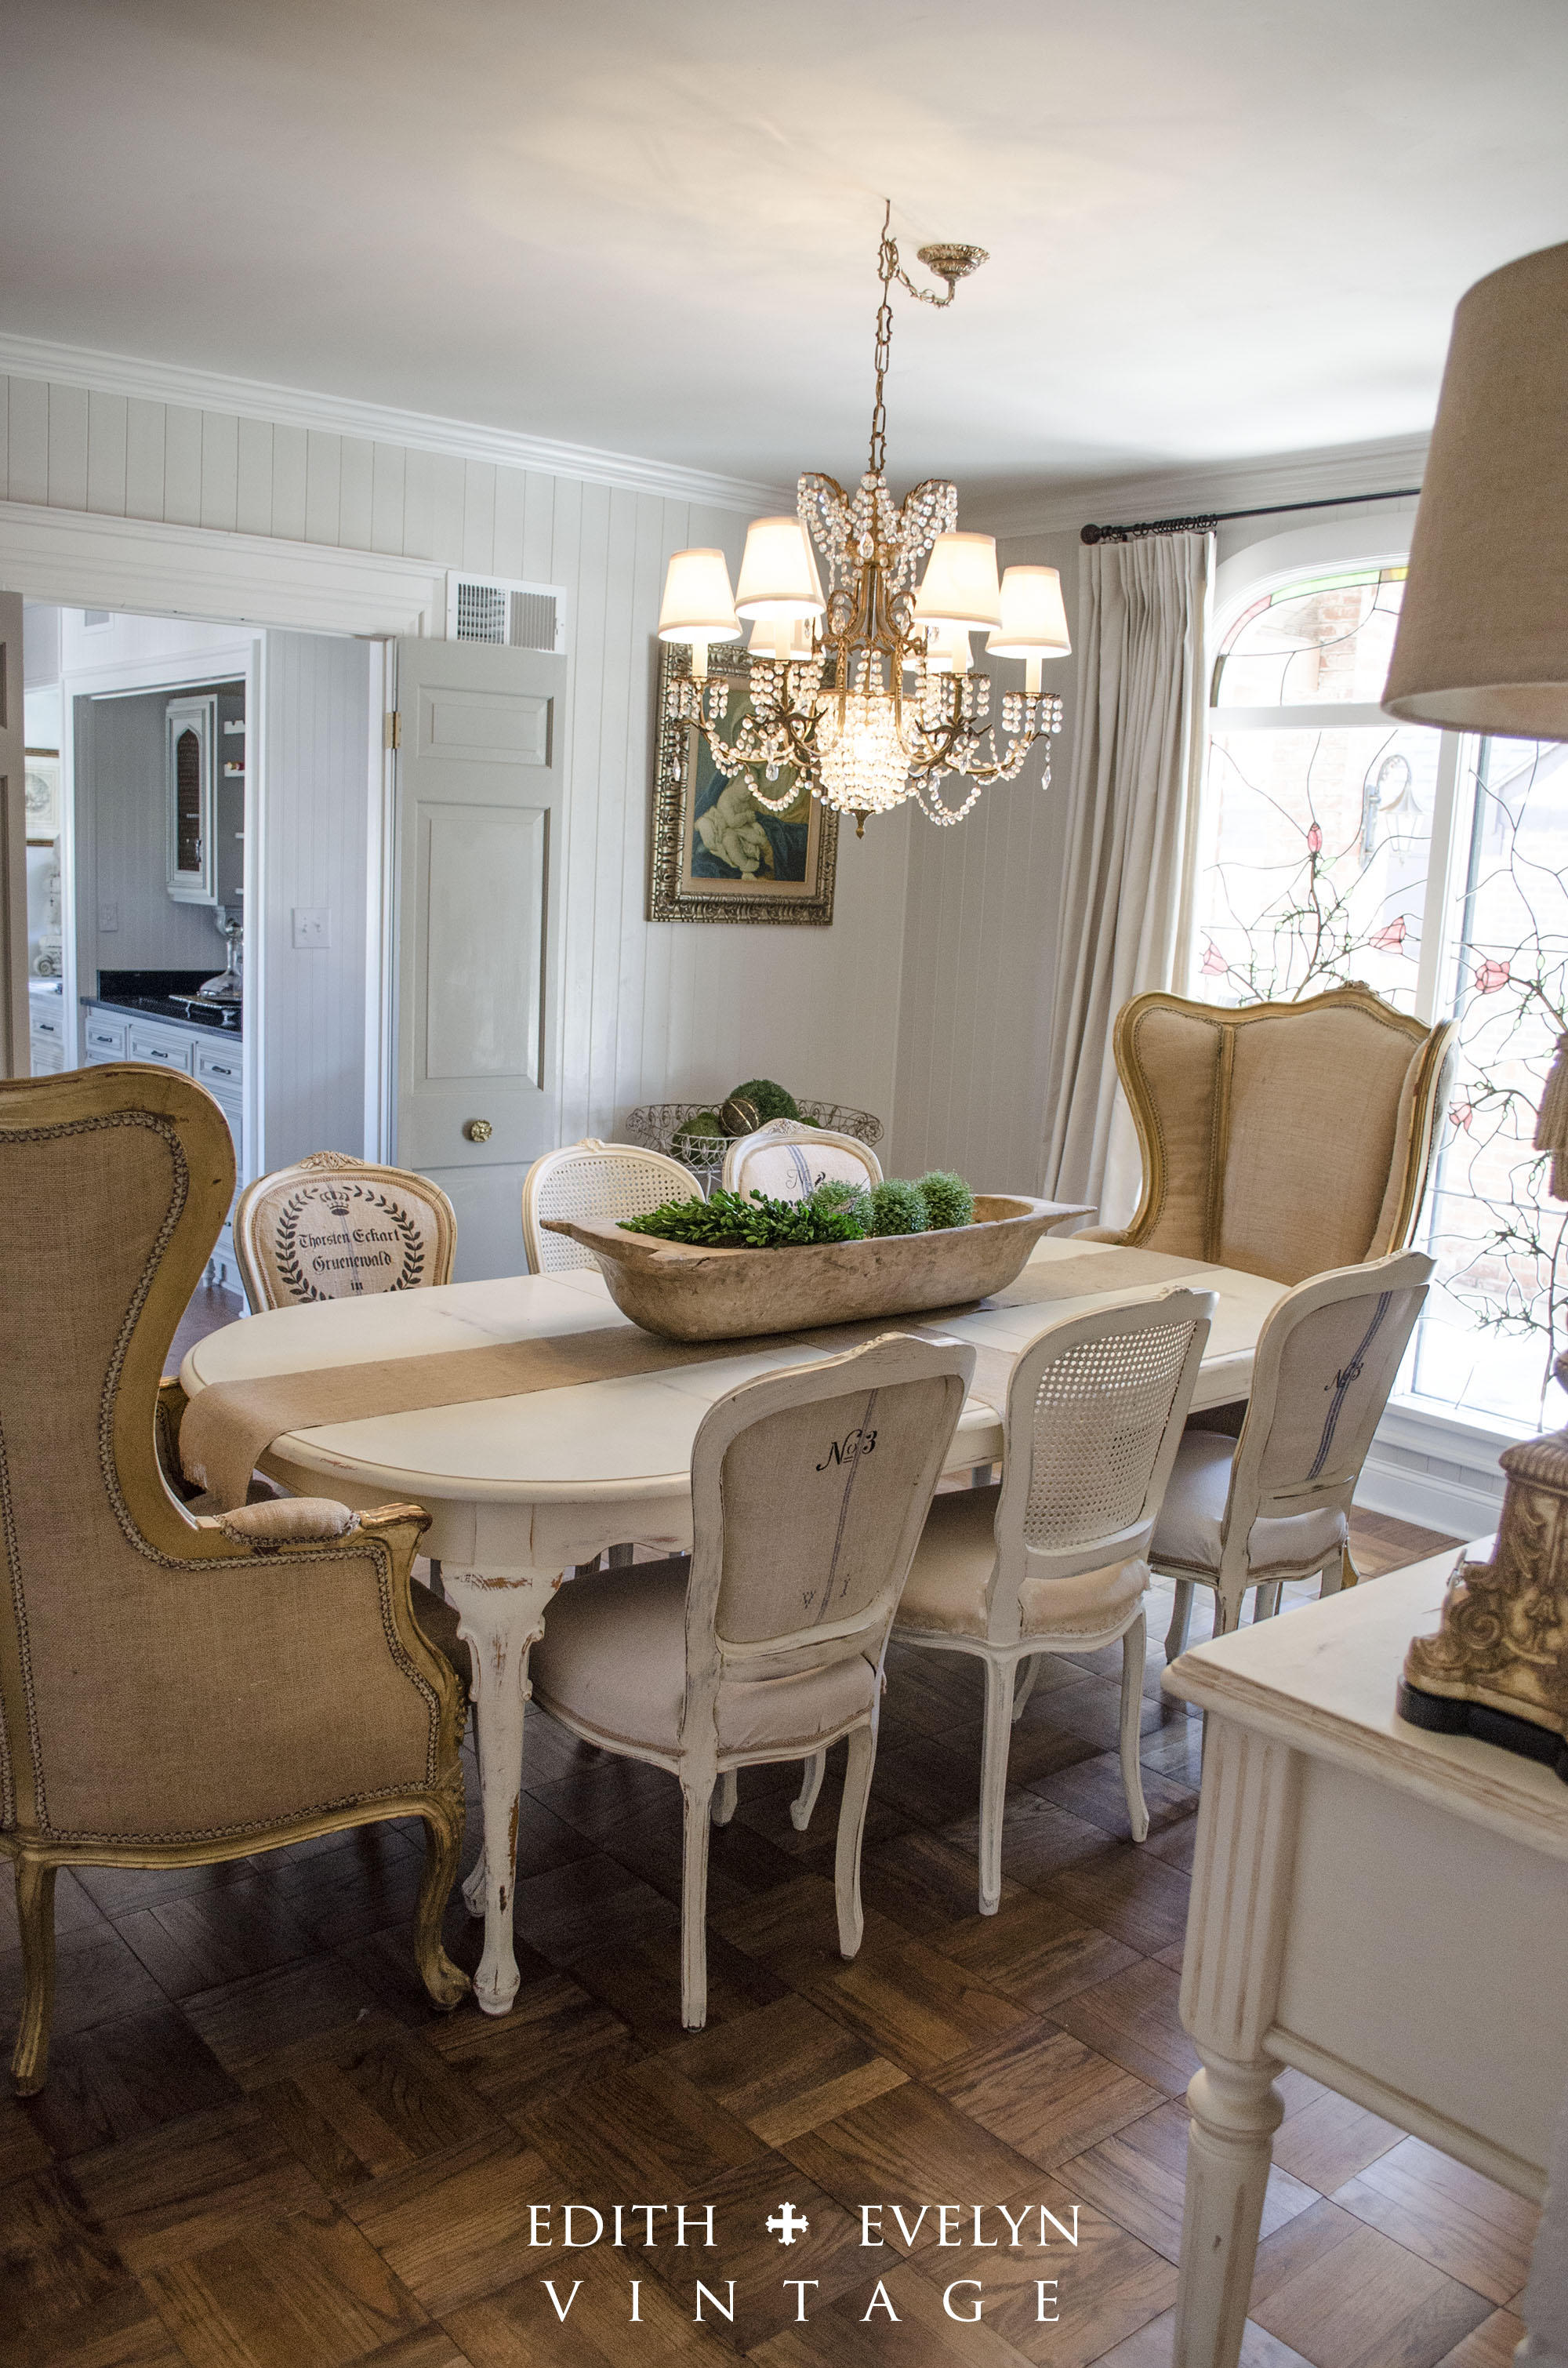 The Dining Room Renovation | Edith & Evelyn Vintage